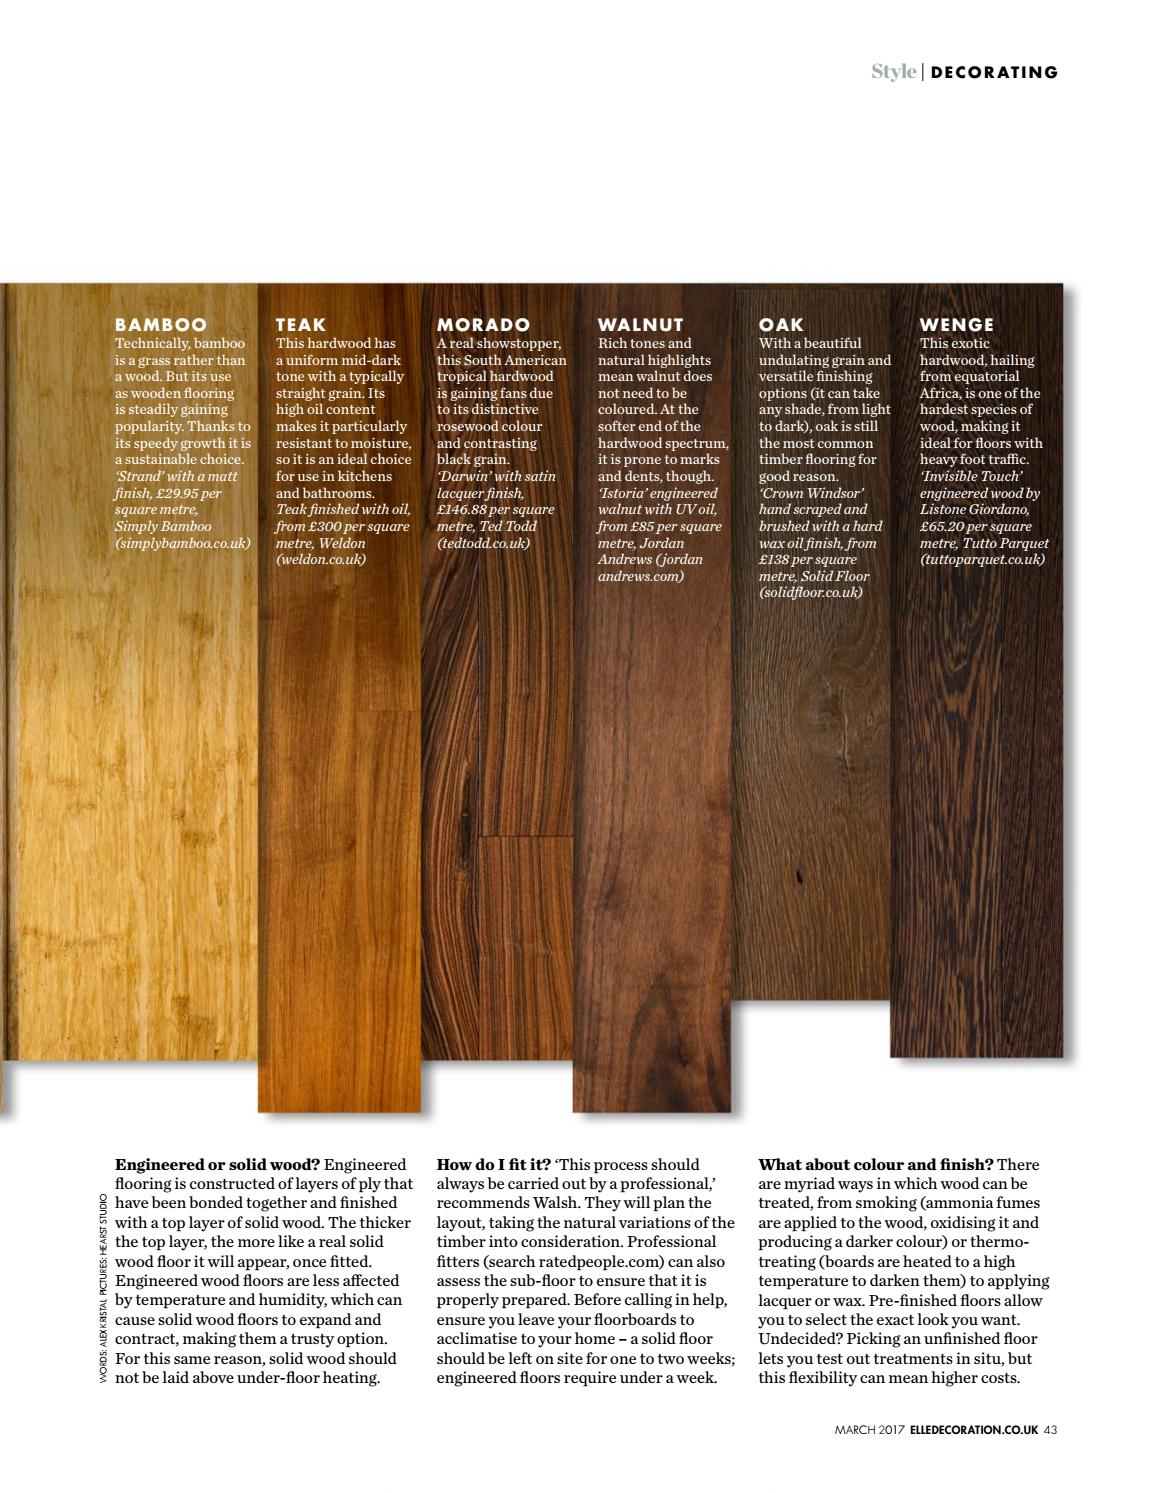 Wenge Oak Solid Wood Flooring 3dfvdfv by 1magazine9 - issuu